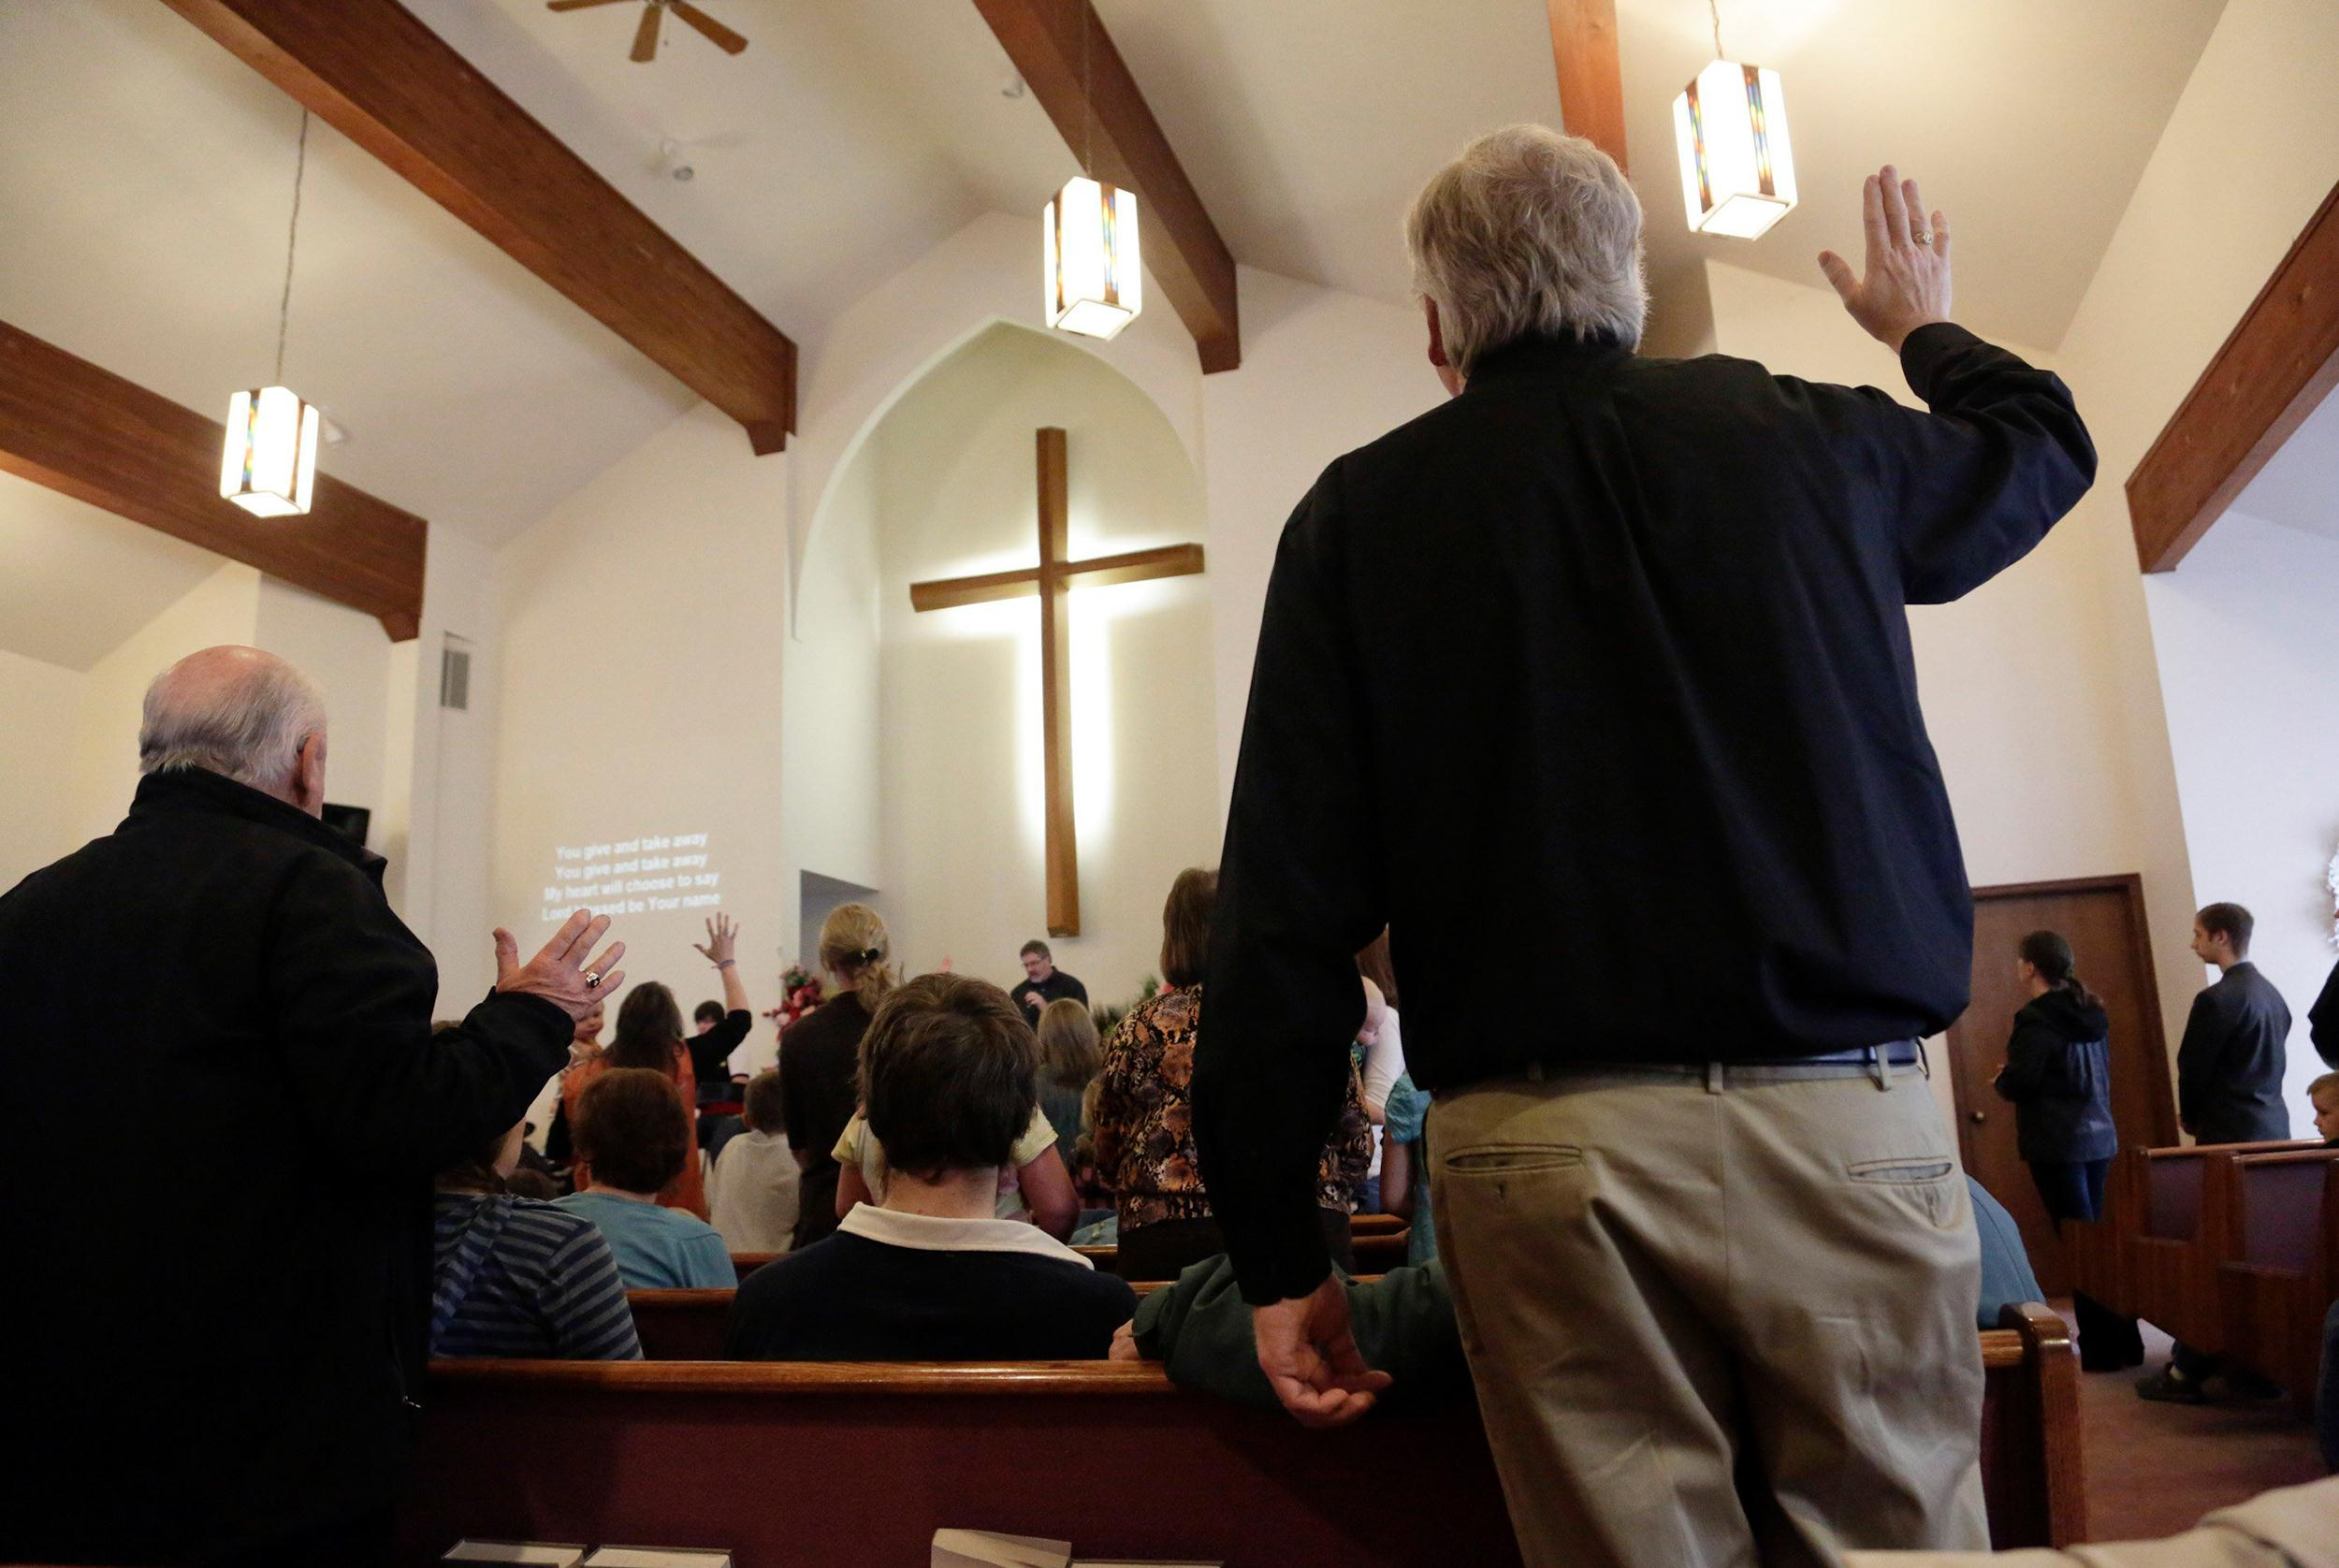 Image: People worship during service at the Glad Tidings Assembly of God church in Darrington